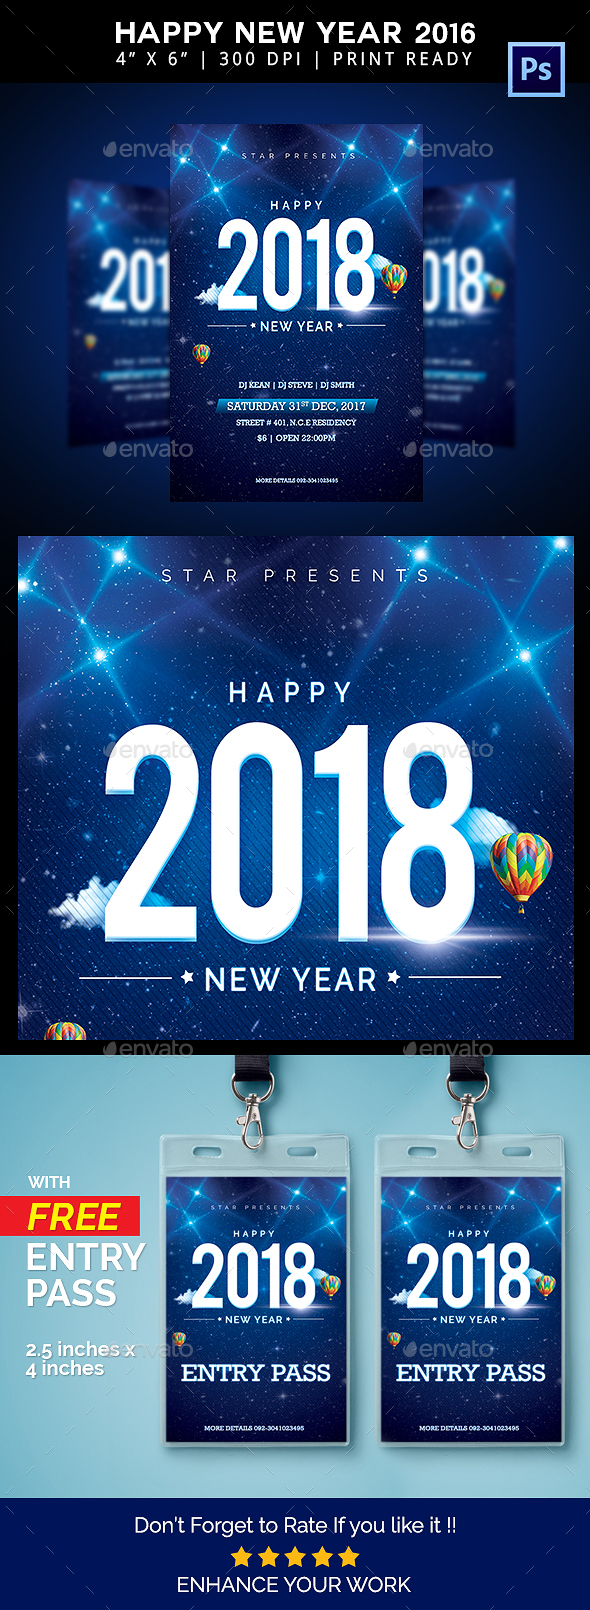 GraphicRiver Happy 2018 New Year Flyer 20899860